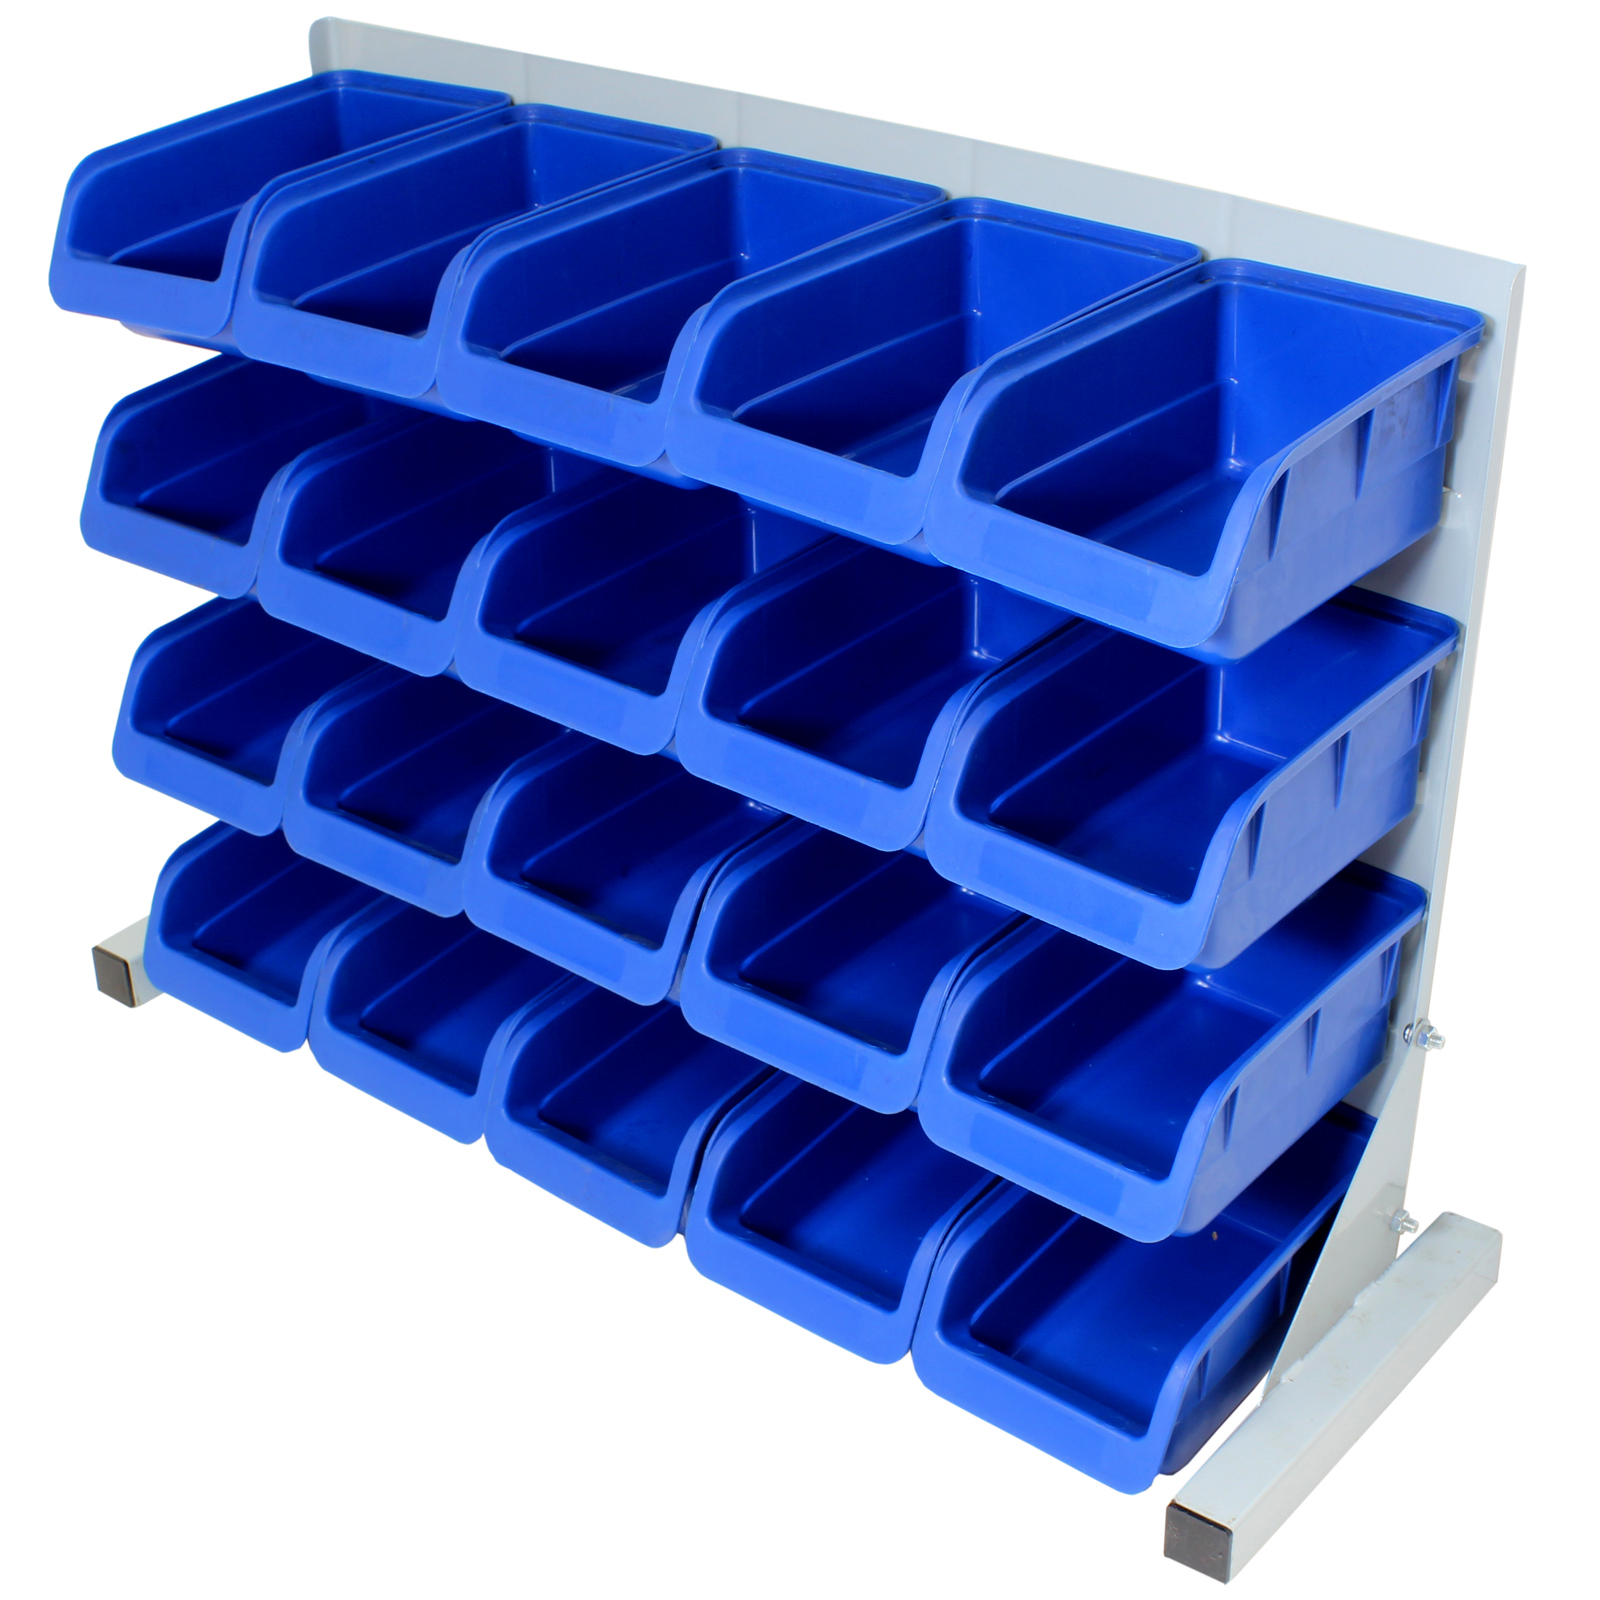 20pce Free Standing Blue Plastic Storage Bin Kit Garage